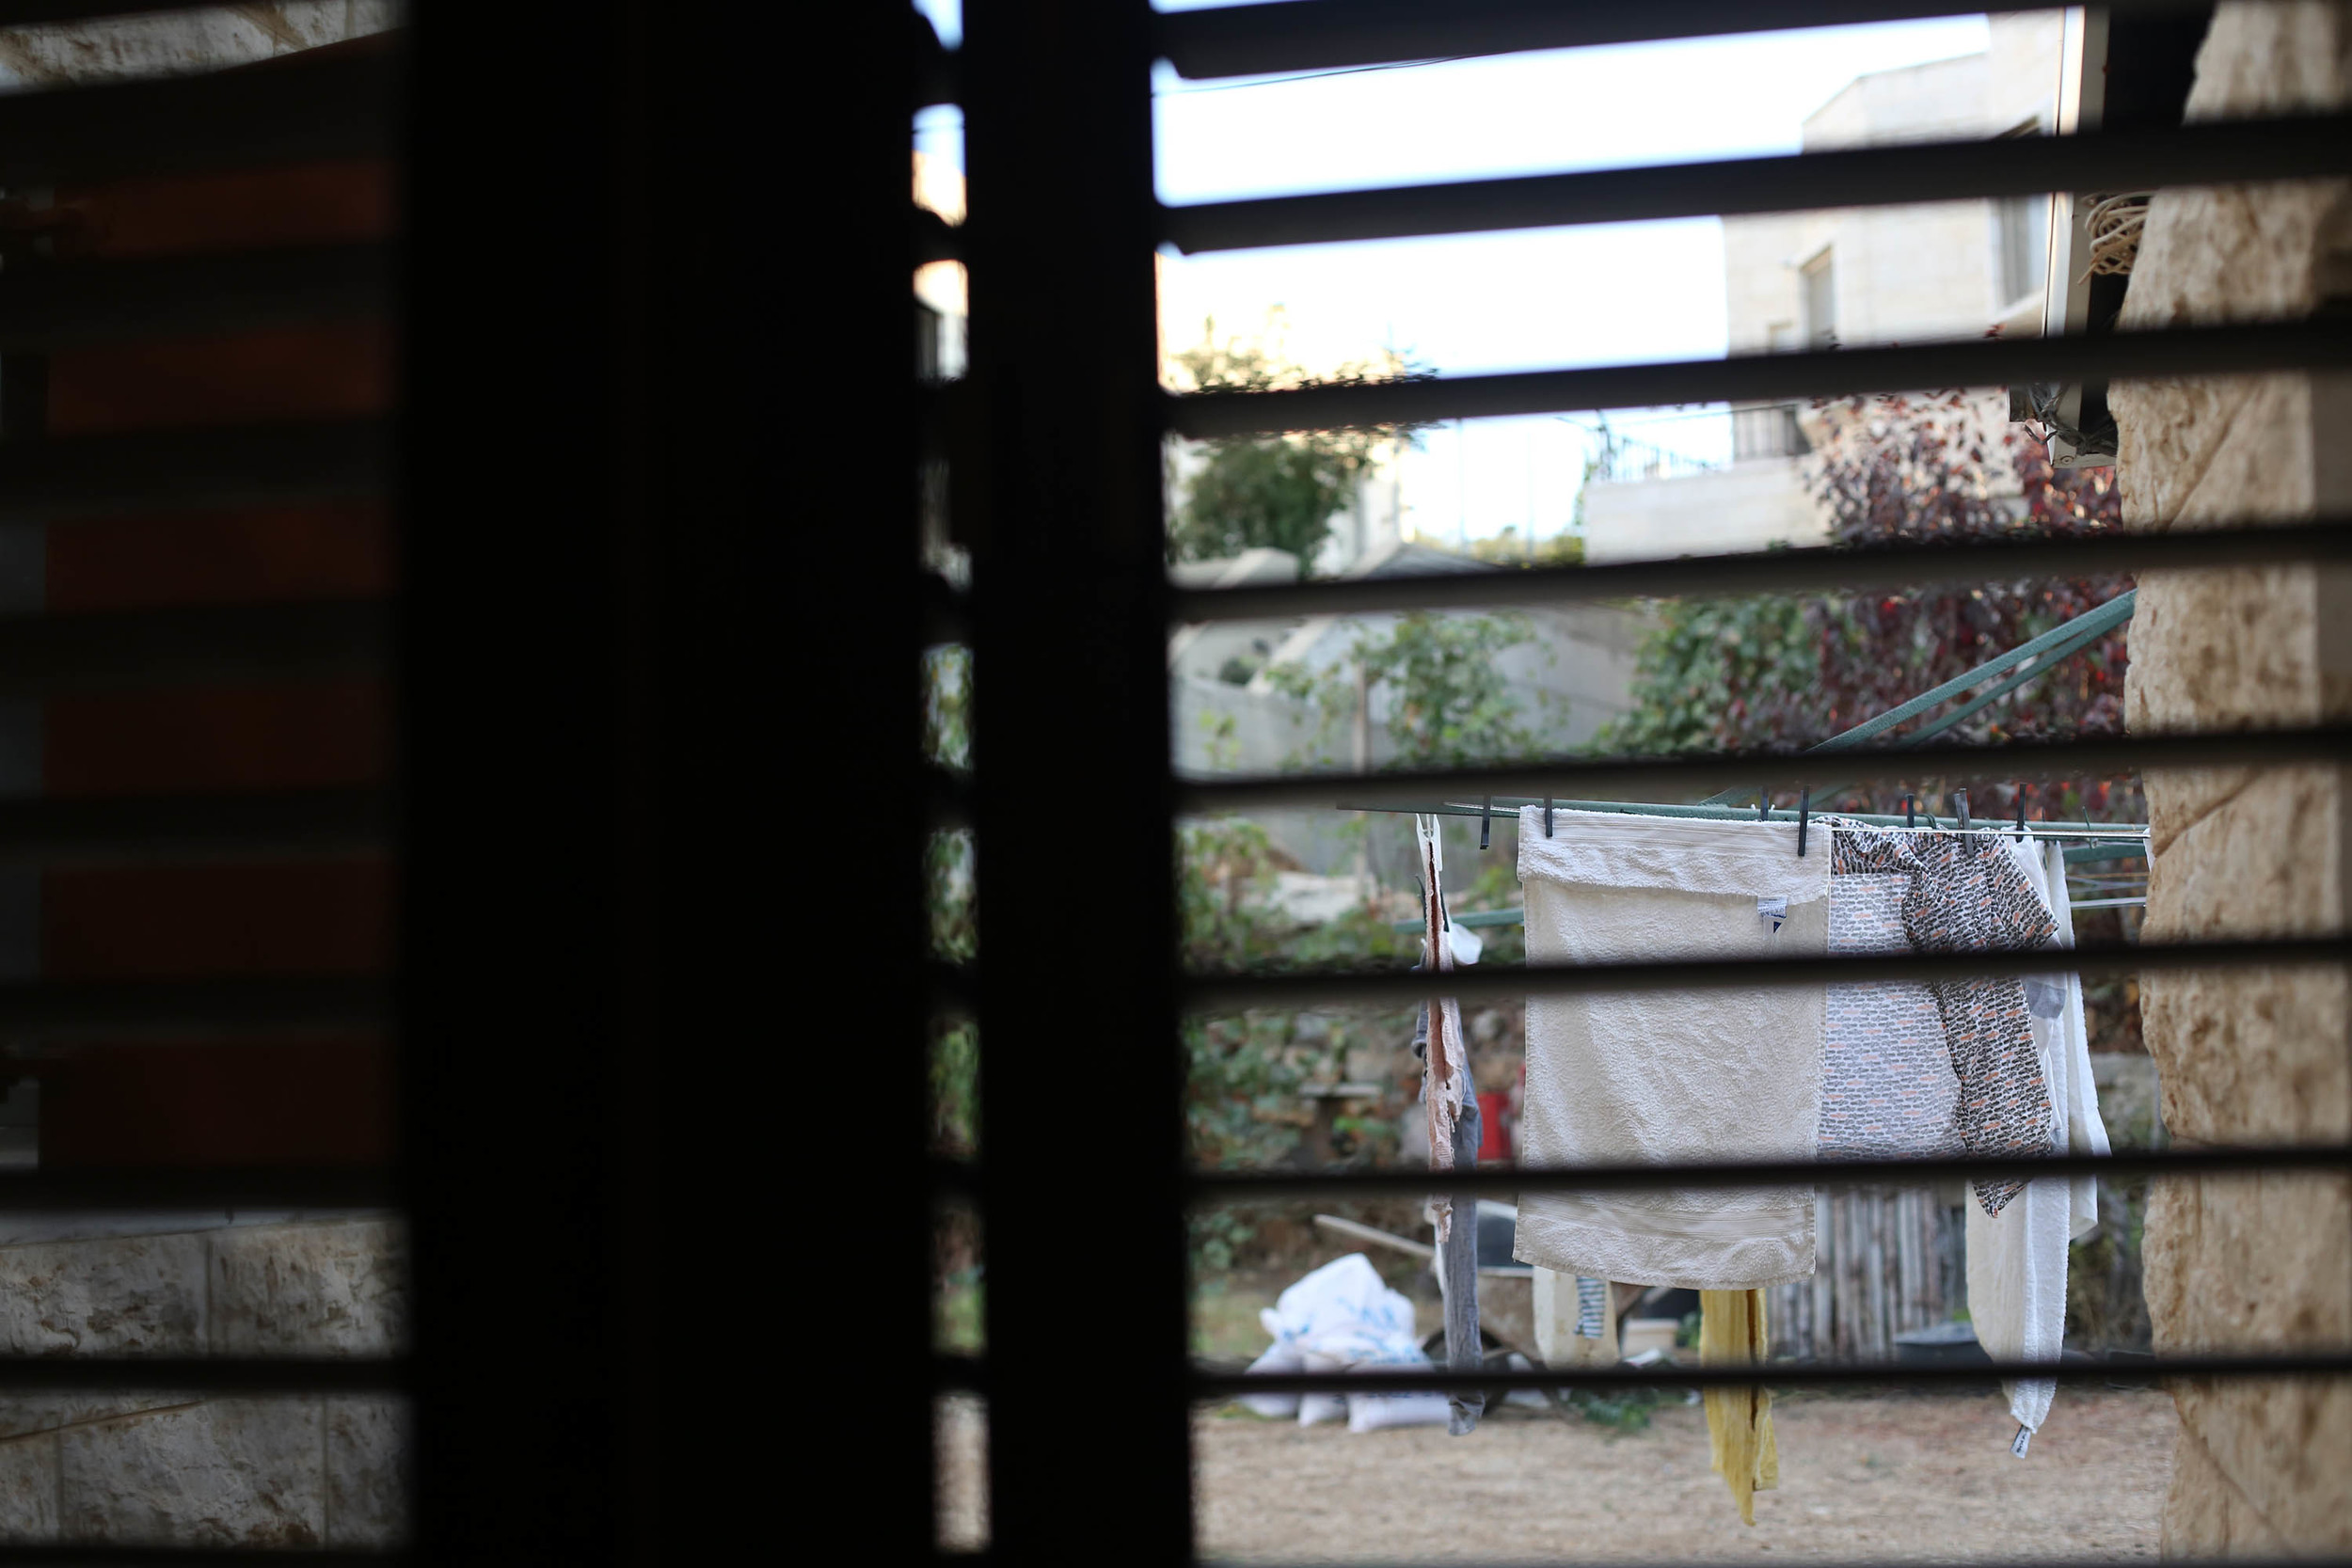 From our bedroom window, the smell of fresh laundry cascades through the shutters.